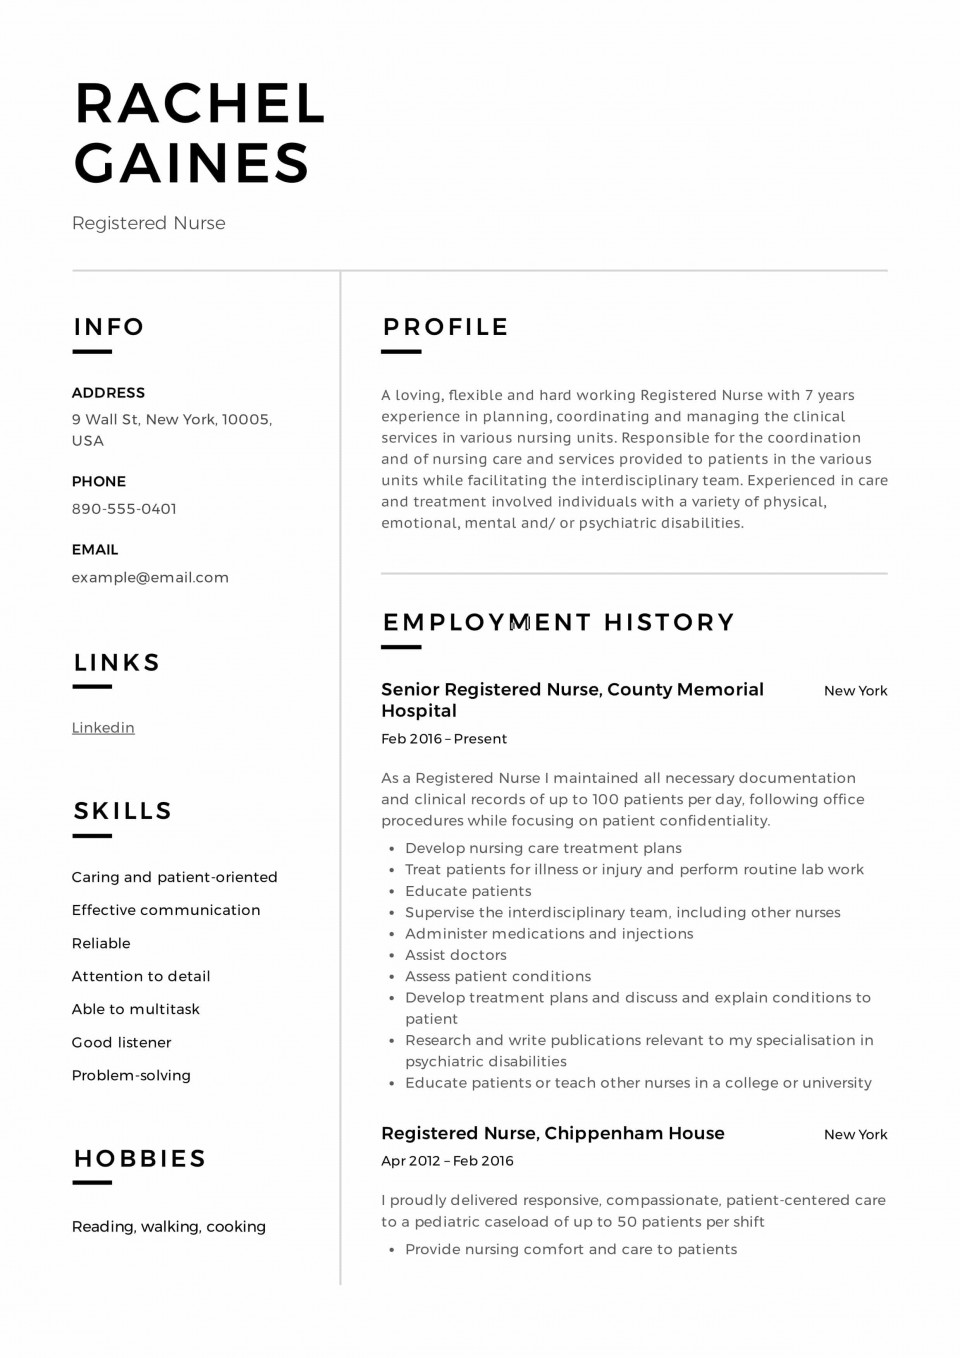 008 Impressive Resume Template For Nurse Inspiration  Sample Nursing Assistant With No Experience Rn' Free960